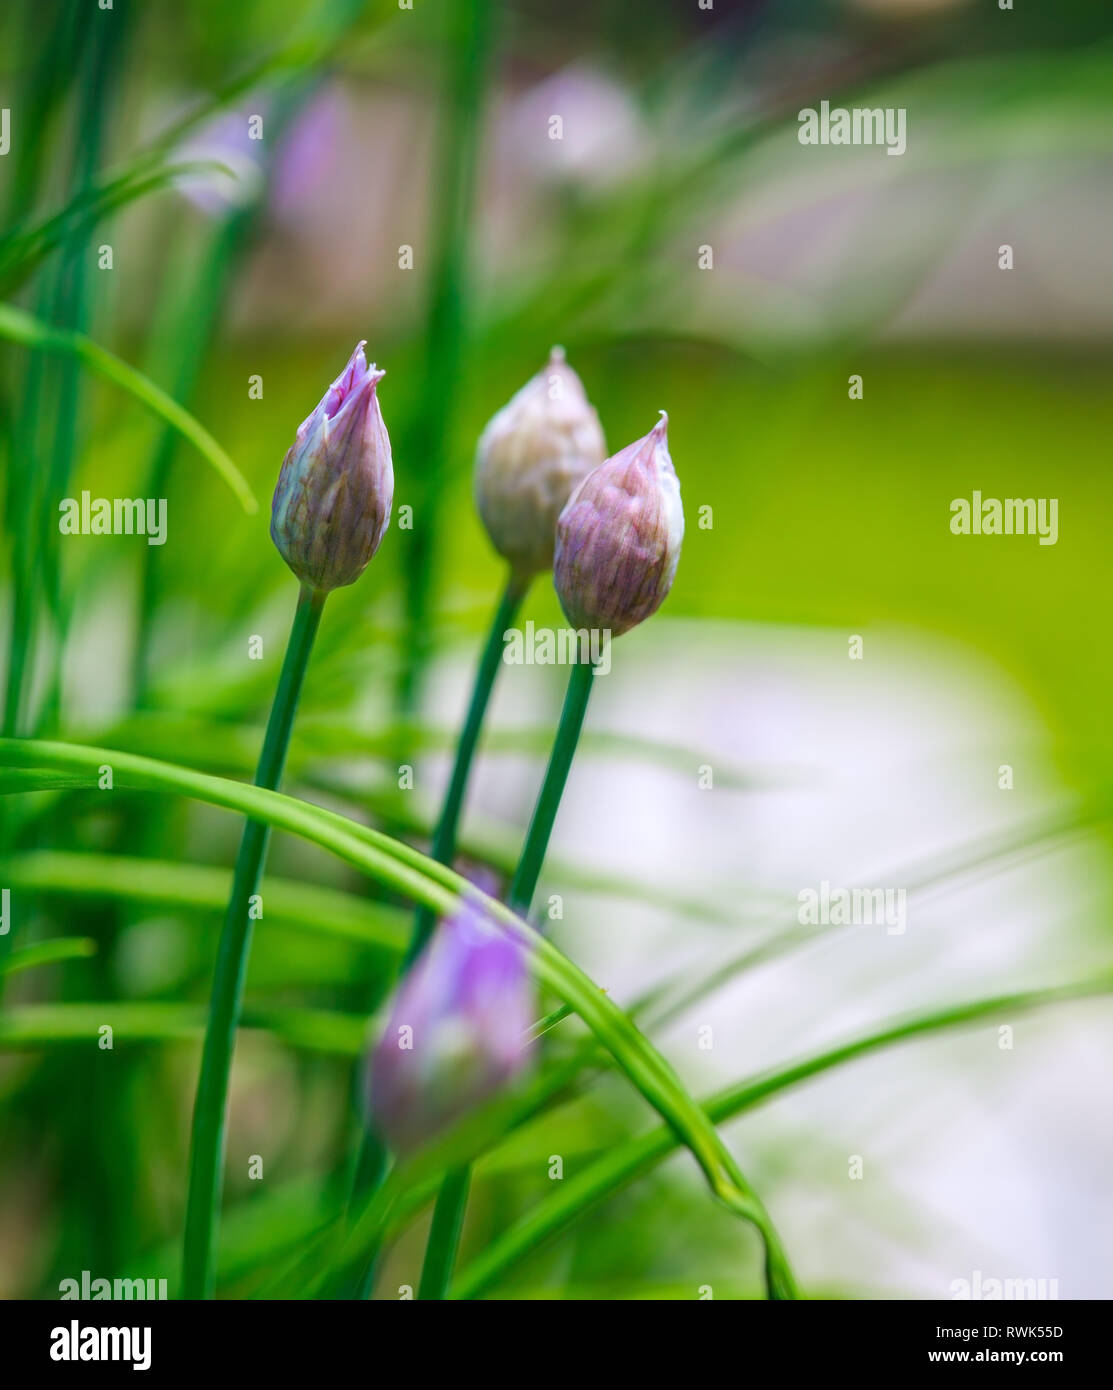 Close-up of Chives about to bloom in the garden. - Stock Image